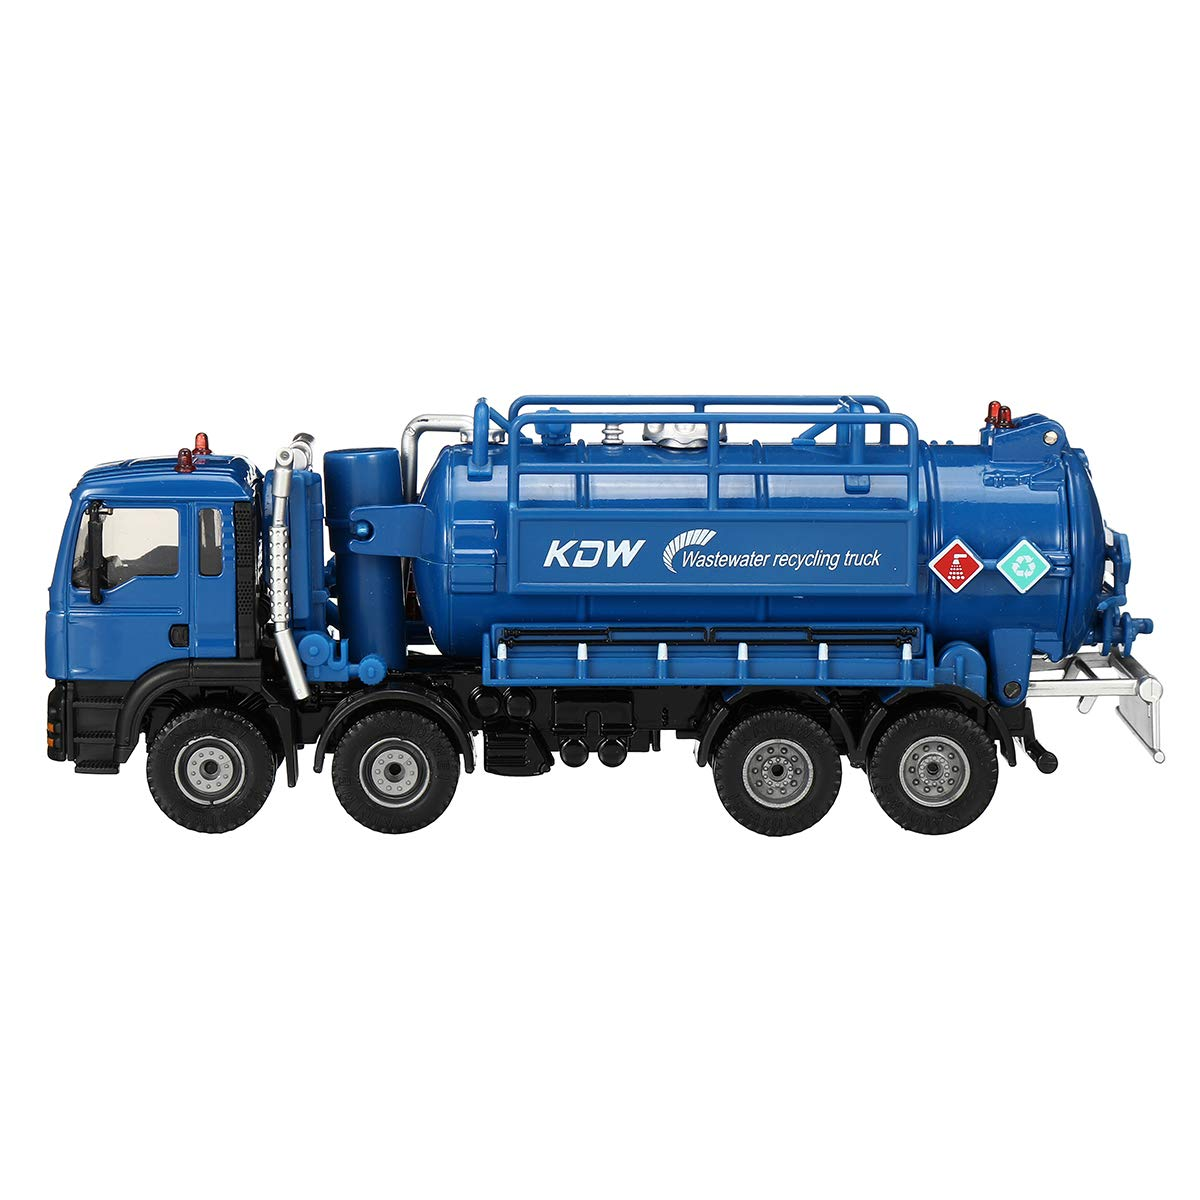 Sevenmore Suction Sewage Truck 1:50 Scale Diecast Model Vacuum Sewage Waste Water Suction Truck Model Toy Shipping Model